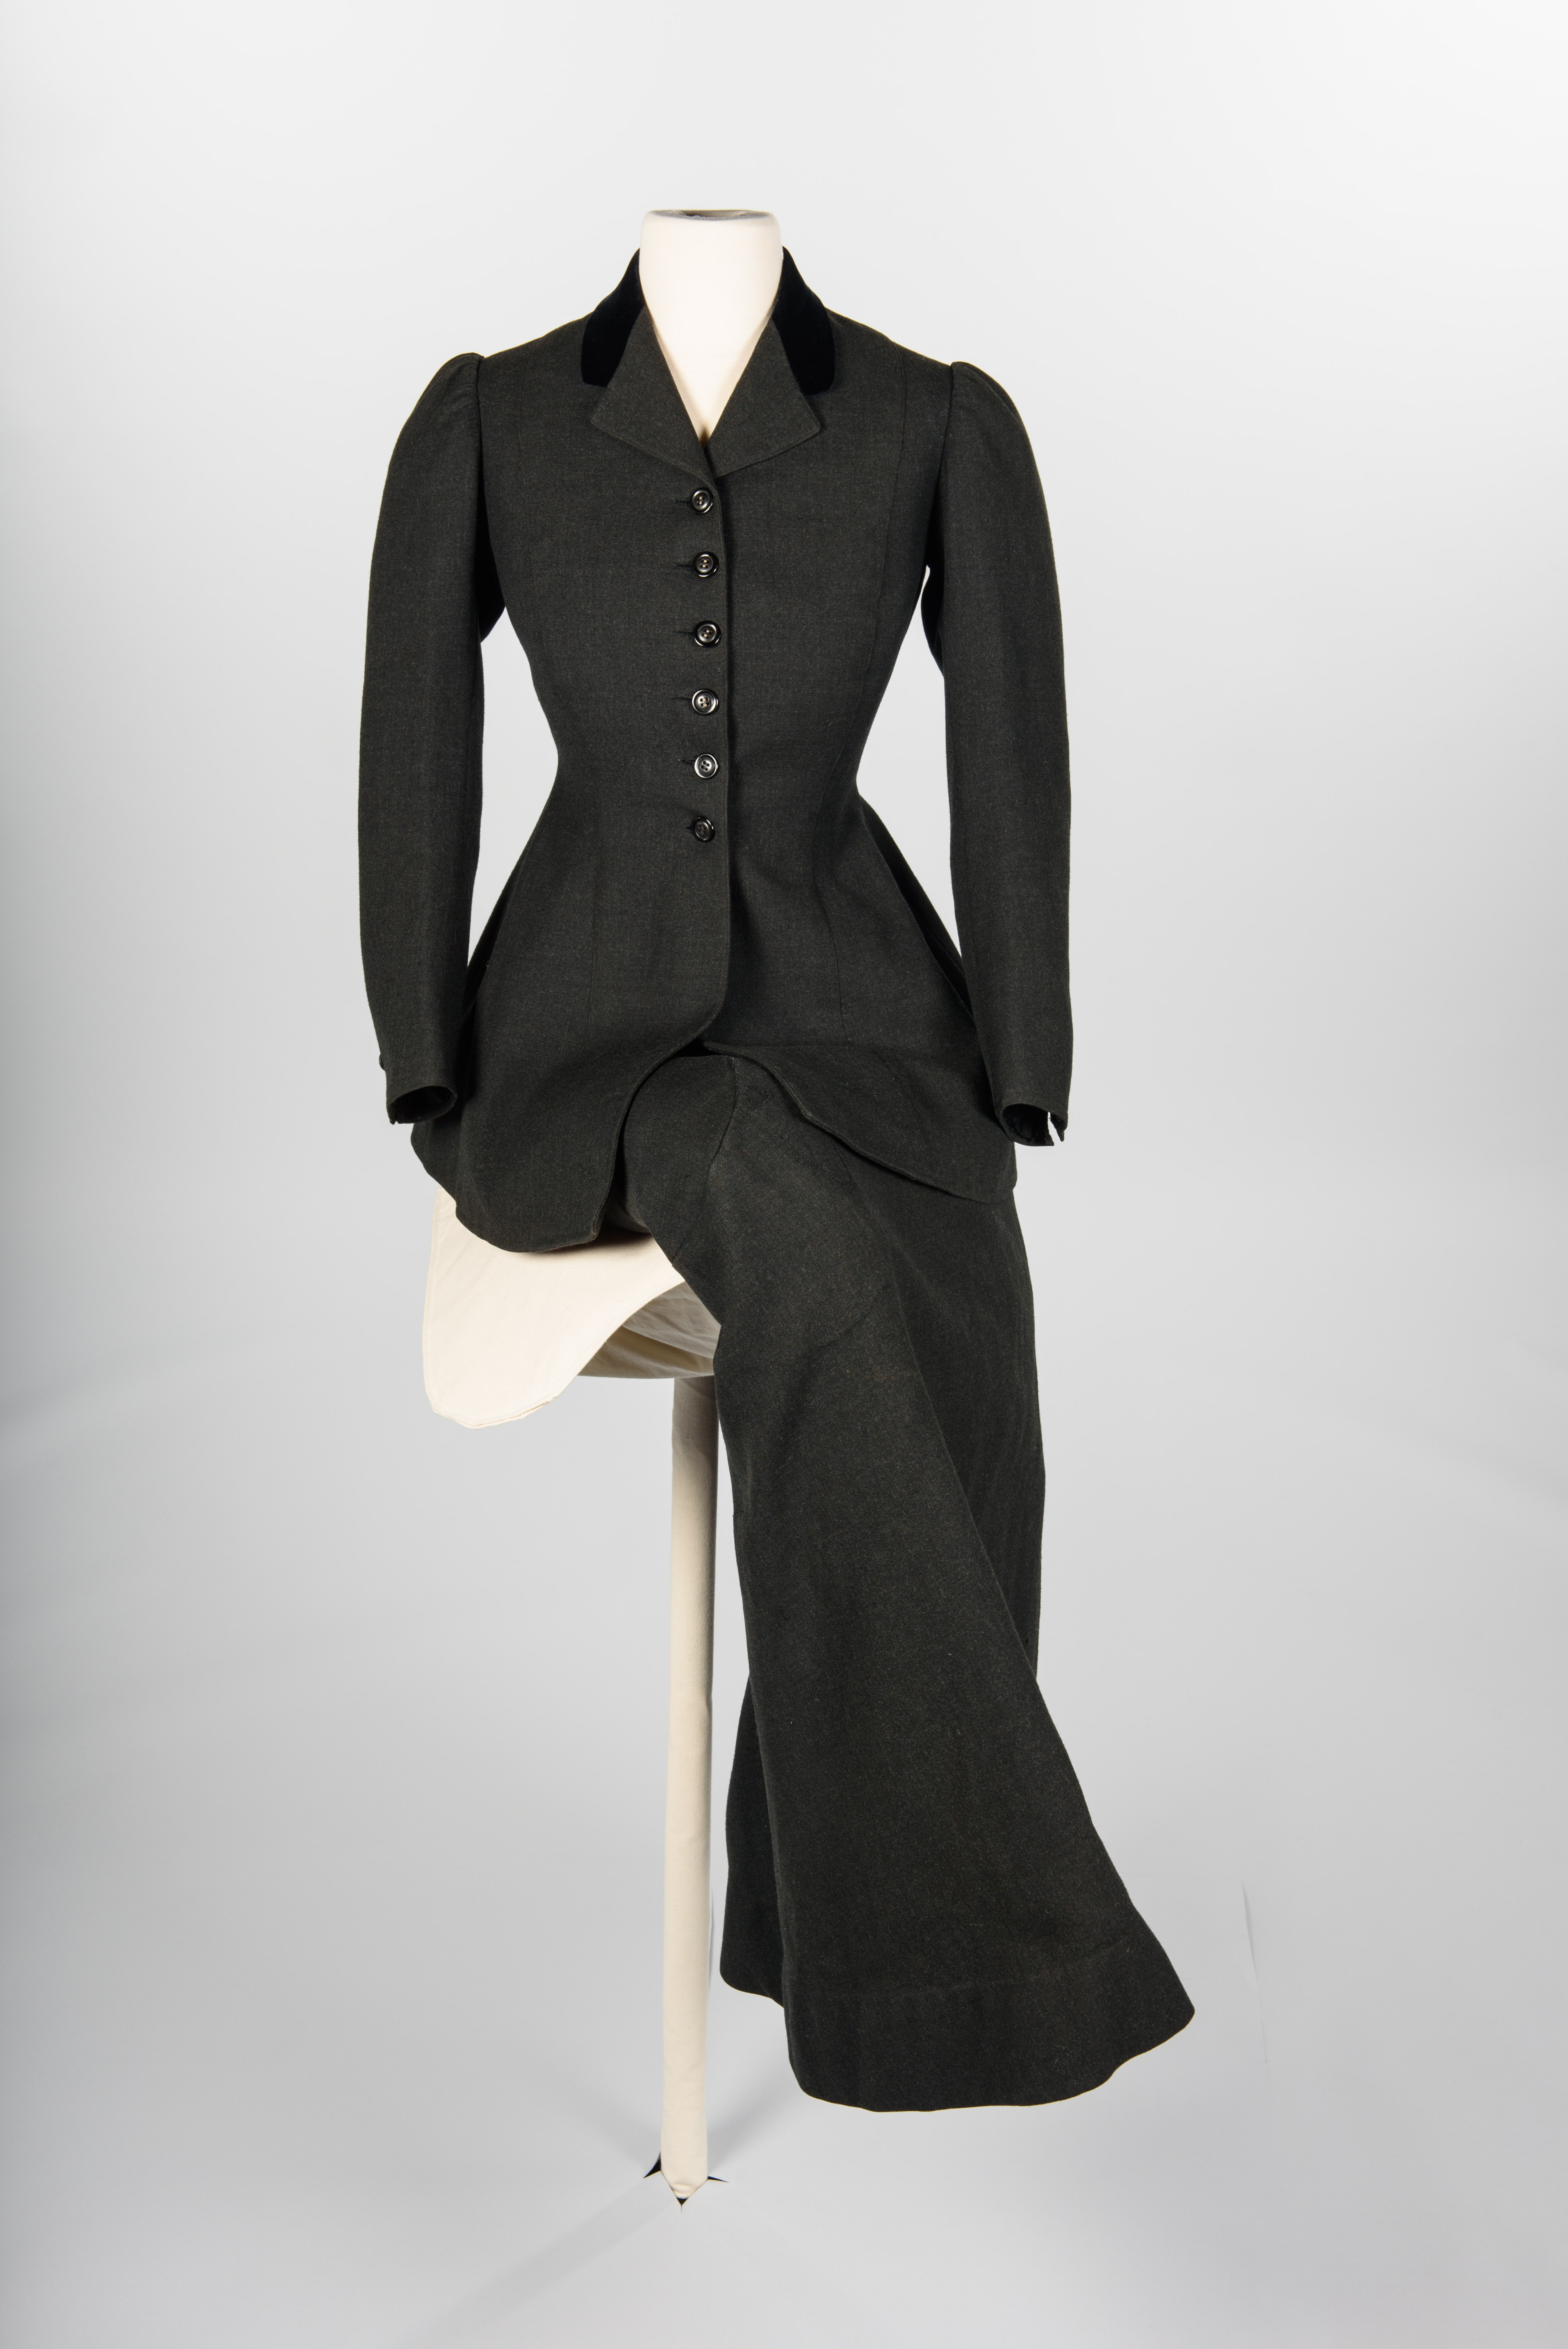 Sidesaddle riding habit, 1907, Shogren, Portland, maker. Copyright MOHAI Collection.{ }